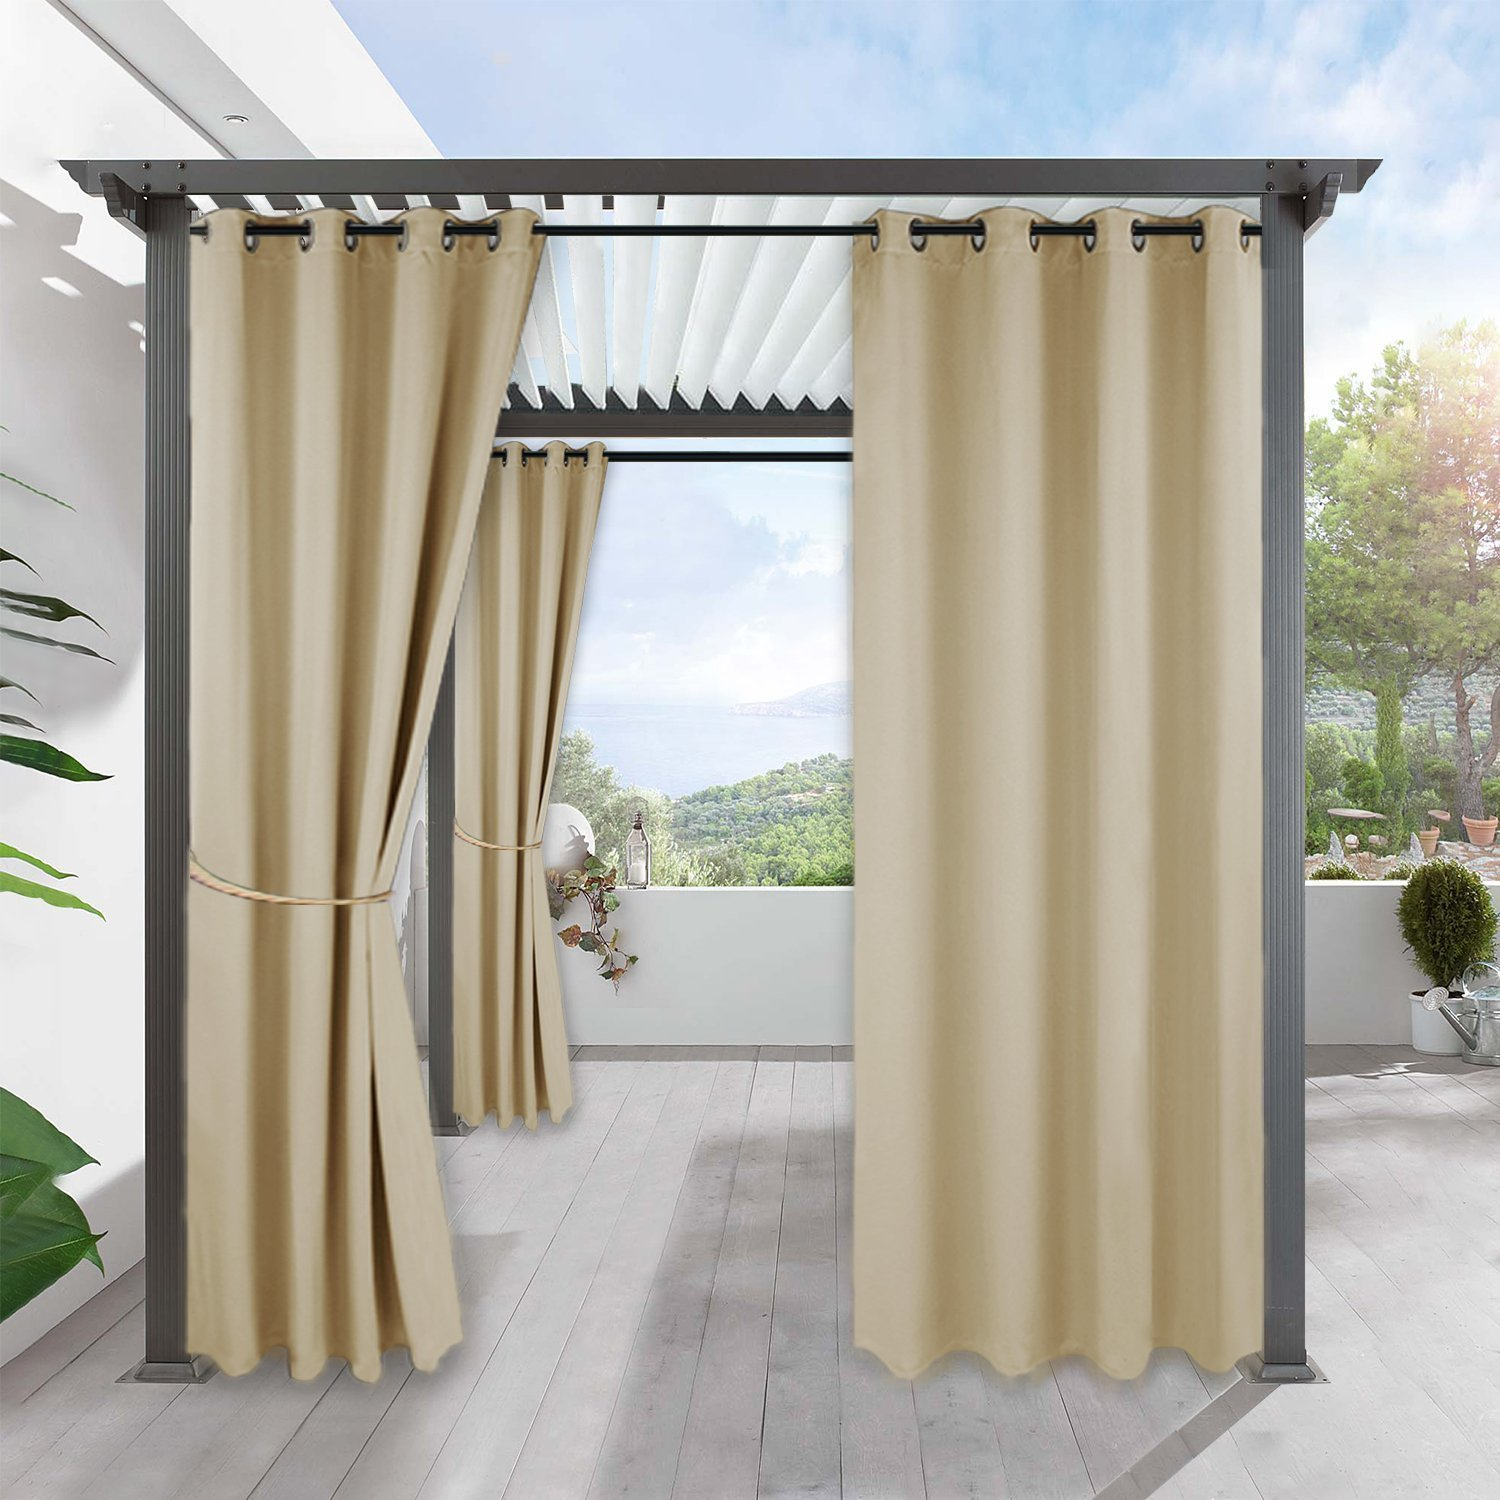 RYB HOME Outdoor Patio Curtain - Heavy - Duty Water & Wind Proof Stain Proof Blackout Curtains Courtyard Exterior Shade for Porch/Farmhouse, 1 Piece, W 52 x L 95 in, Biscotti Beige by RYB HOME (Image #1)